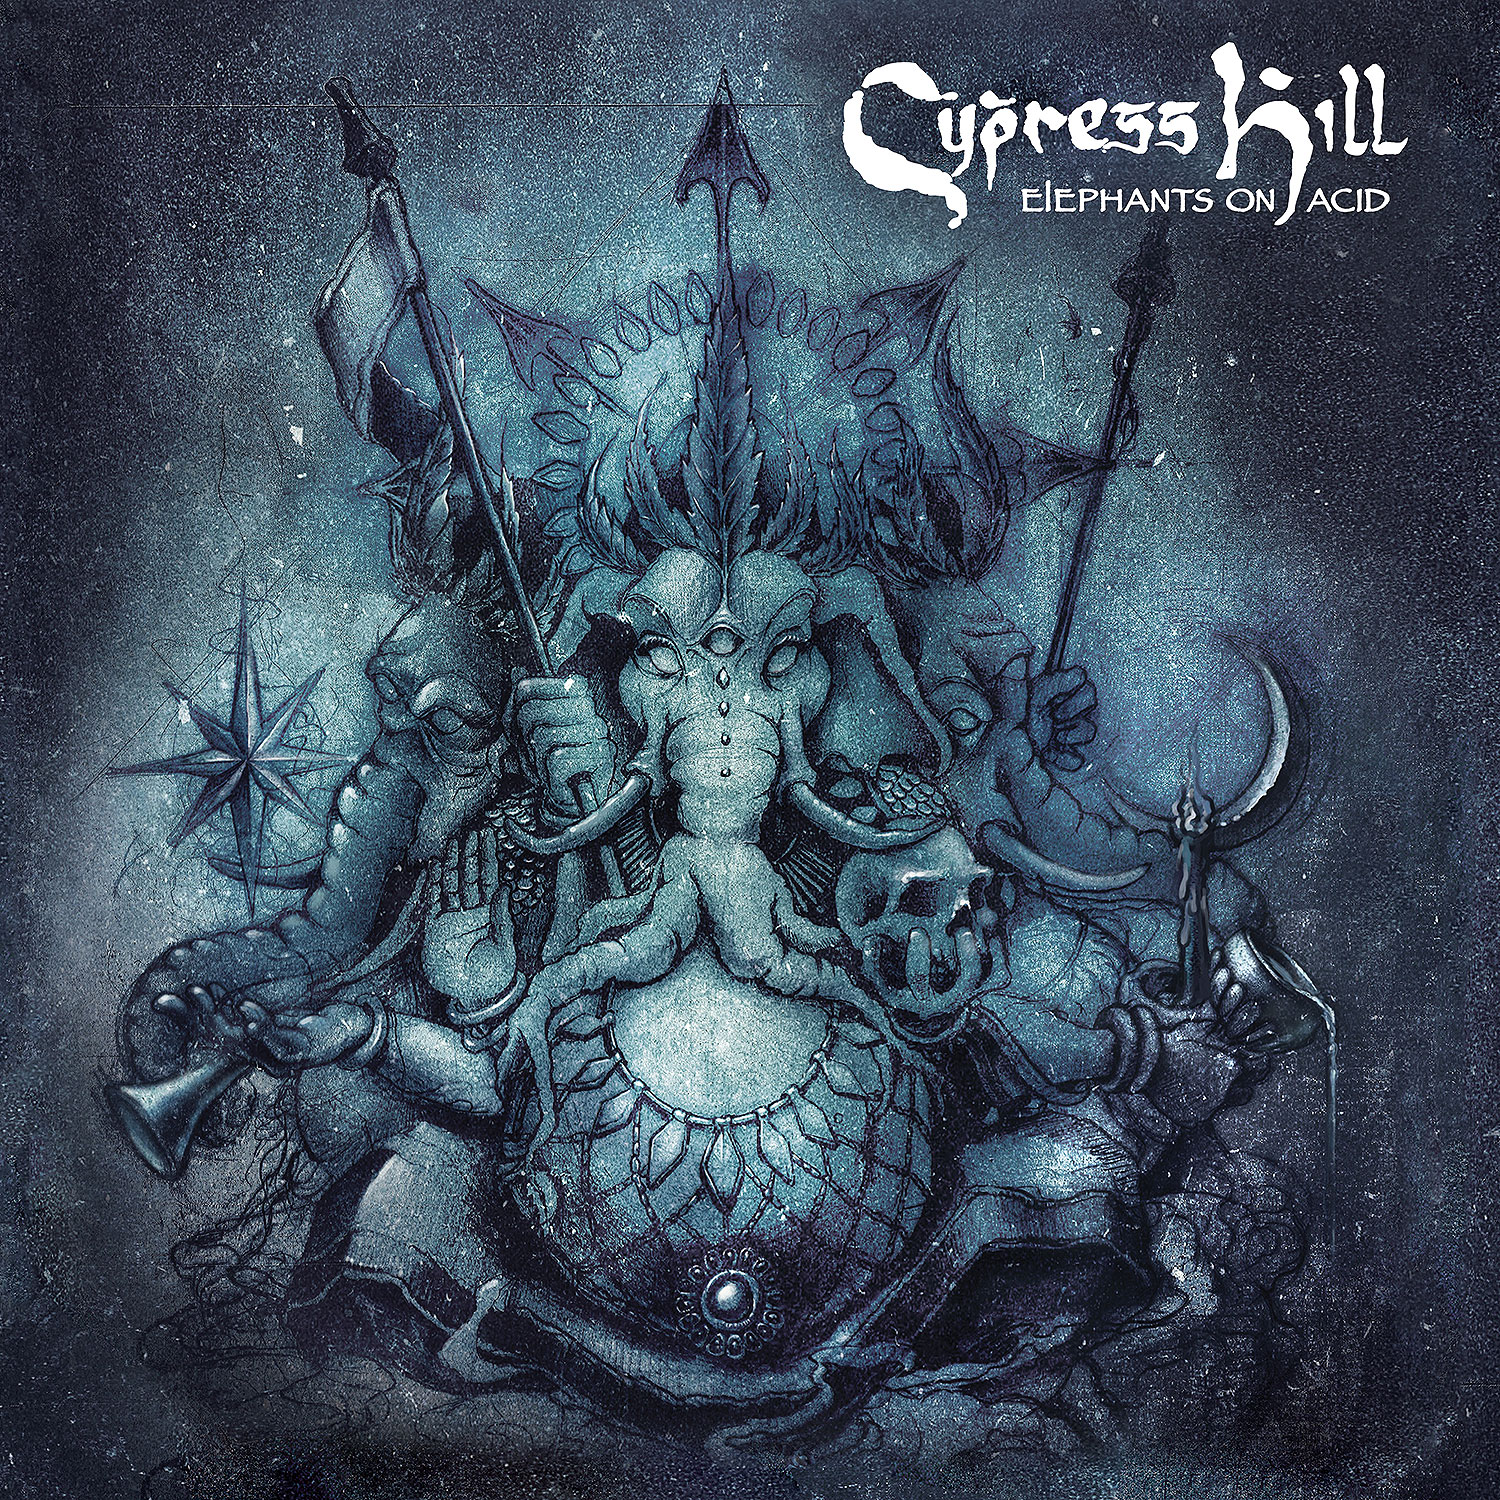 Elephants on Acid Cypress Hill Album Cover Preview